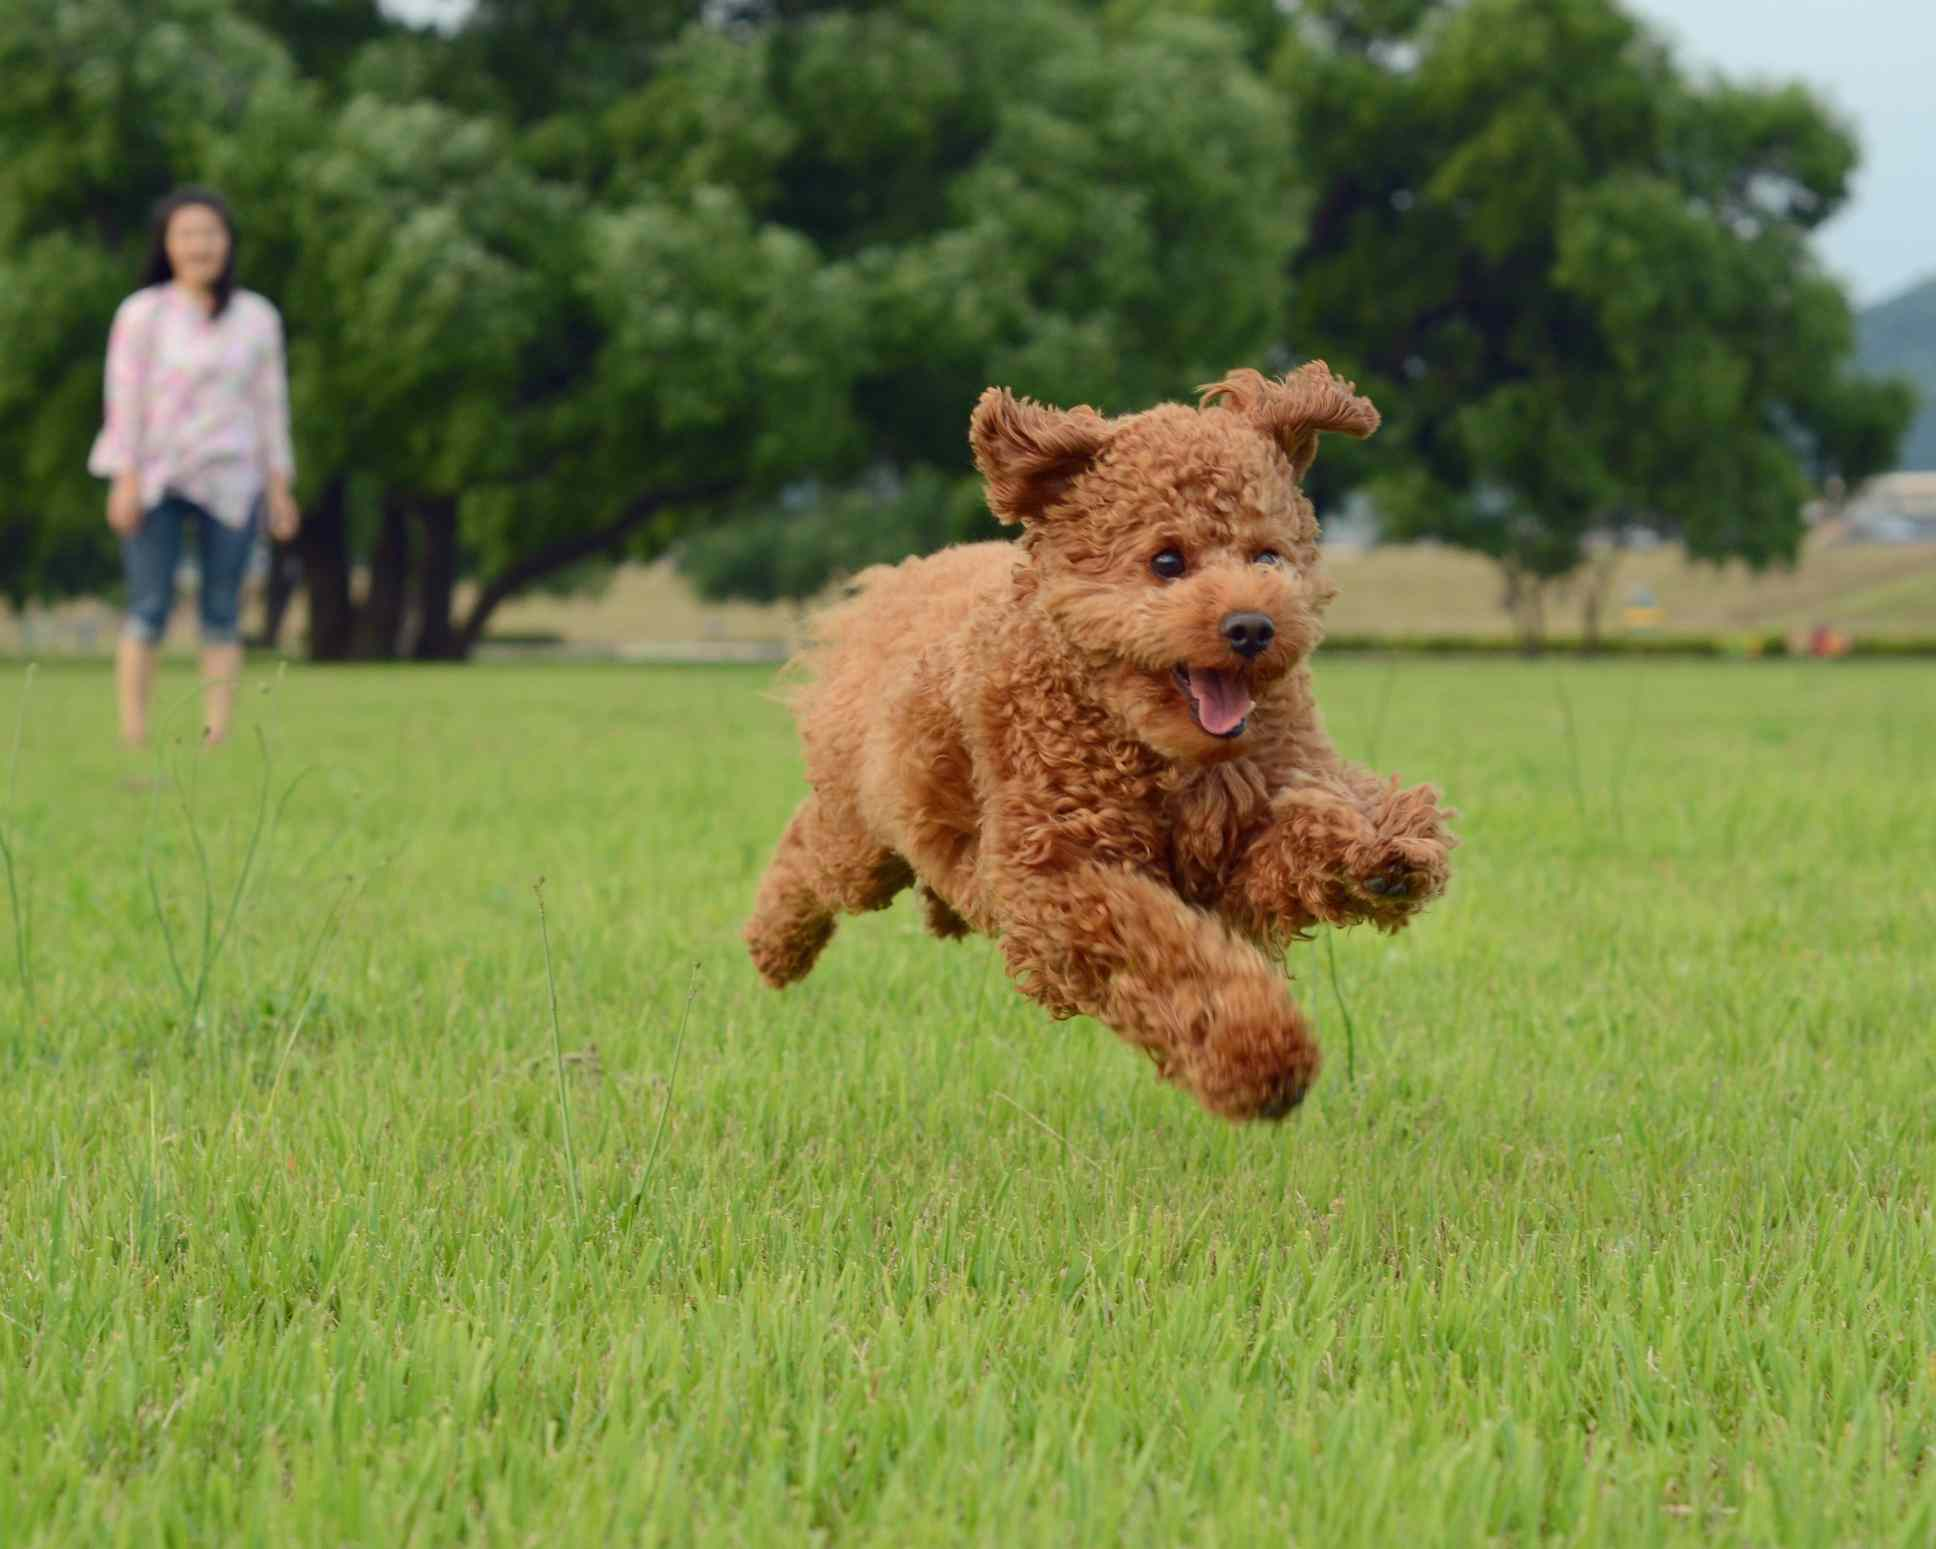 Apricot poodle running